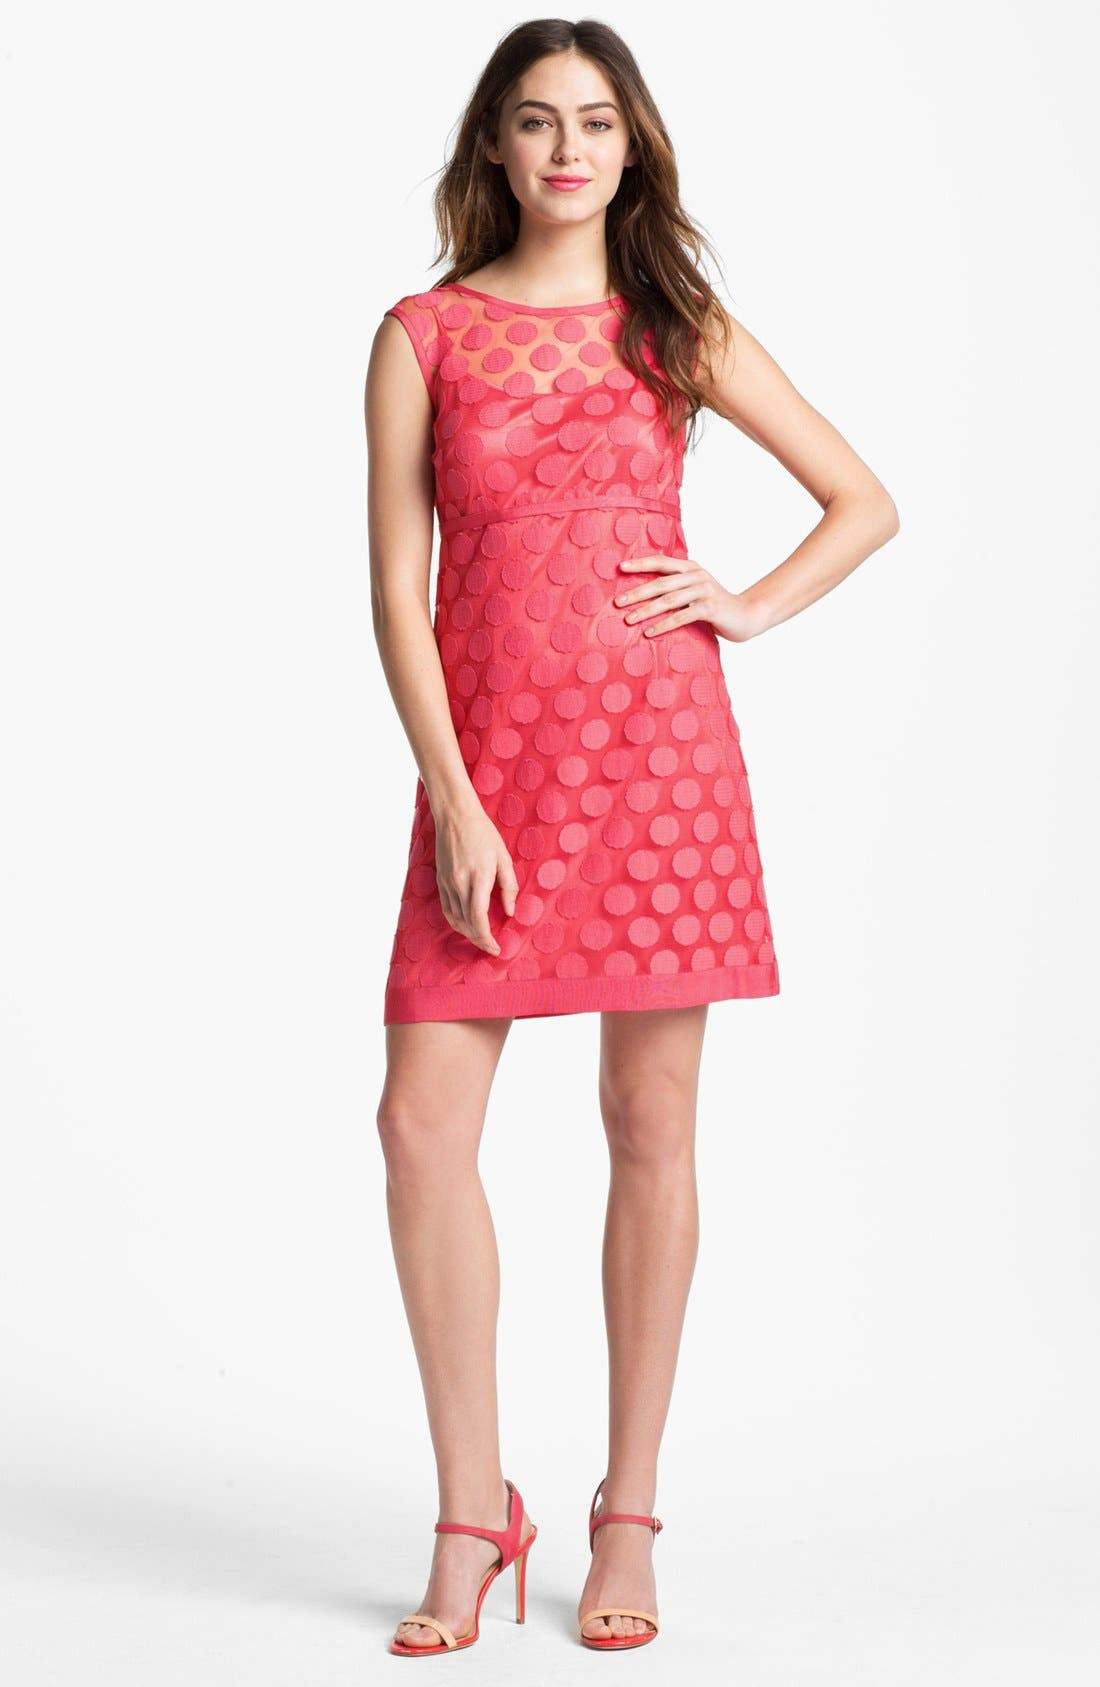 Main Image - Laundry by Shelli Segal Polka Dot Lace A-Line Dress (Regular & Petite)